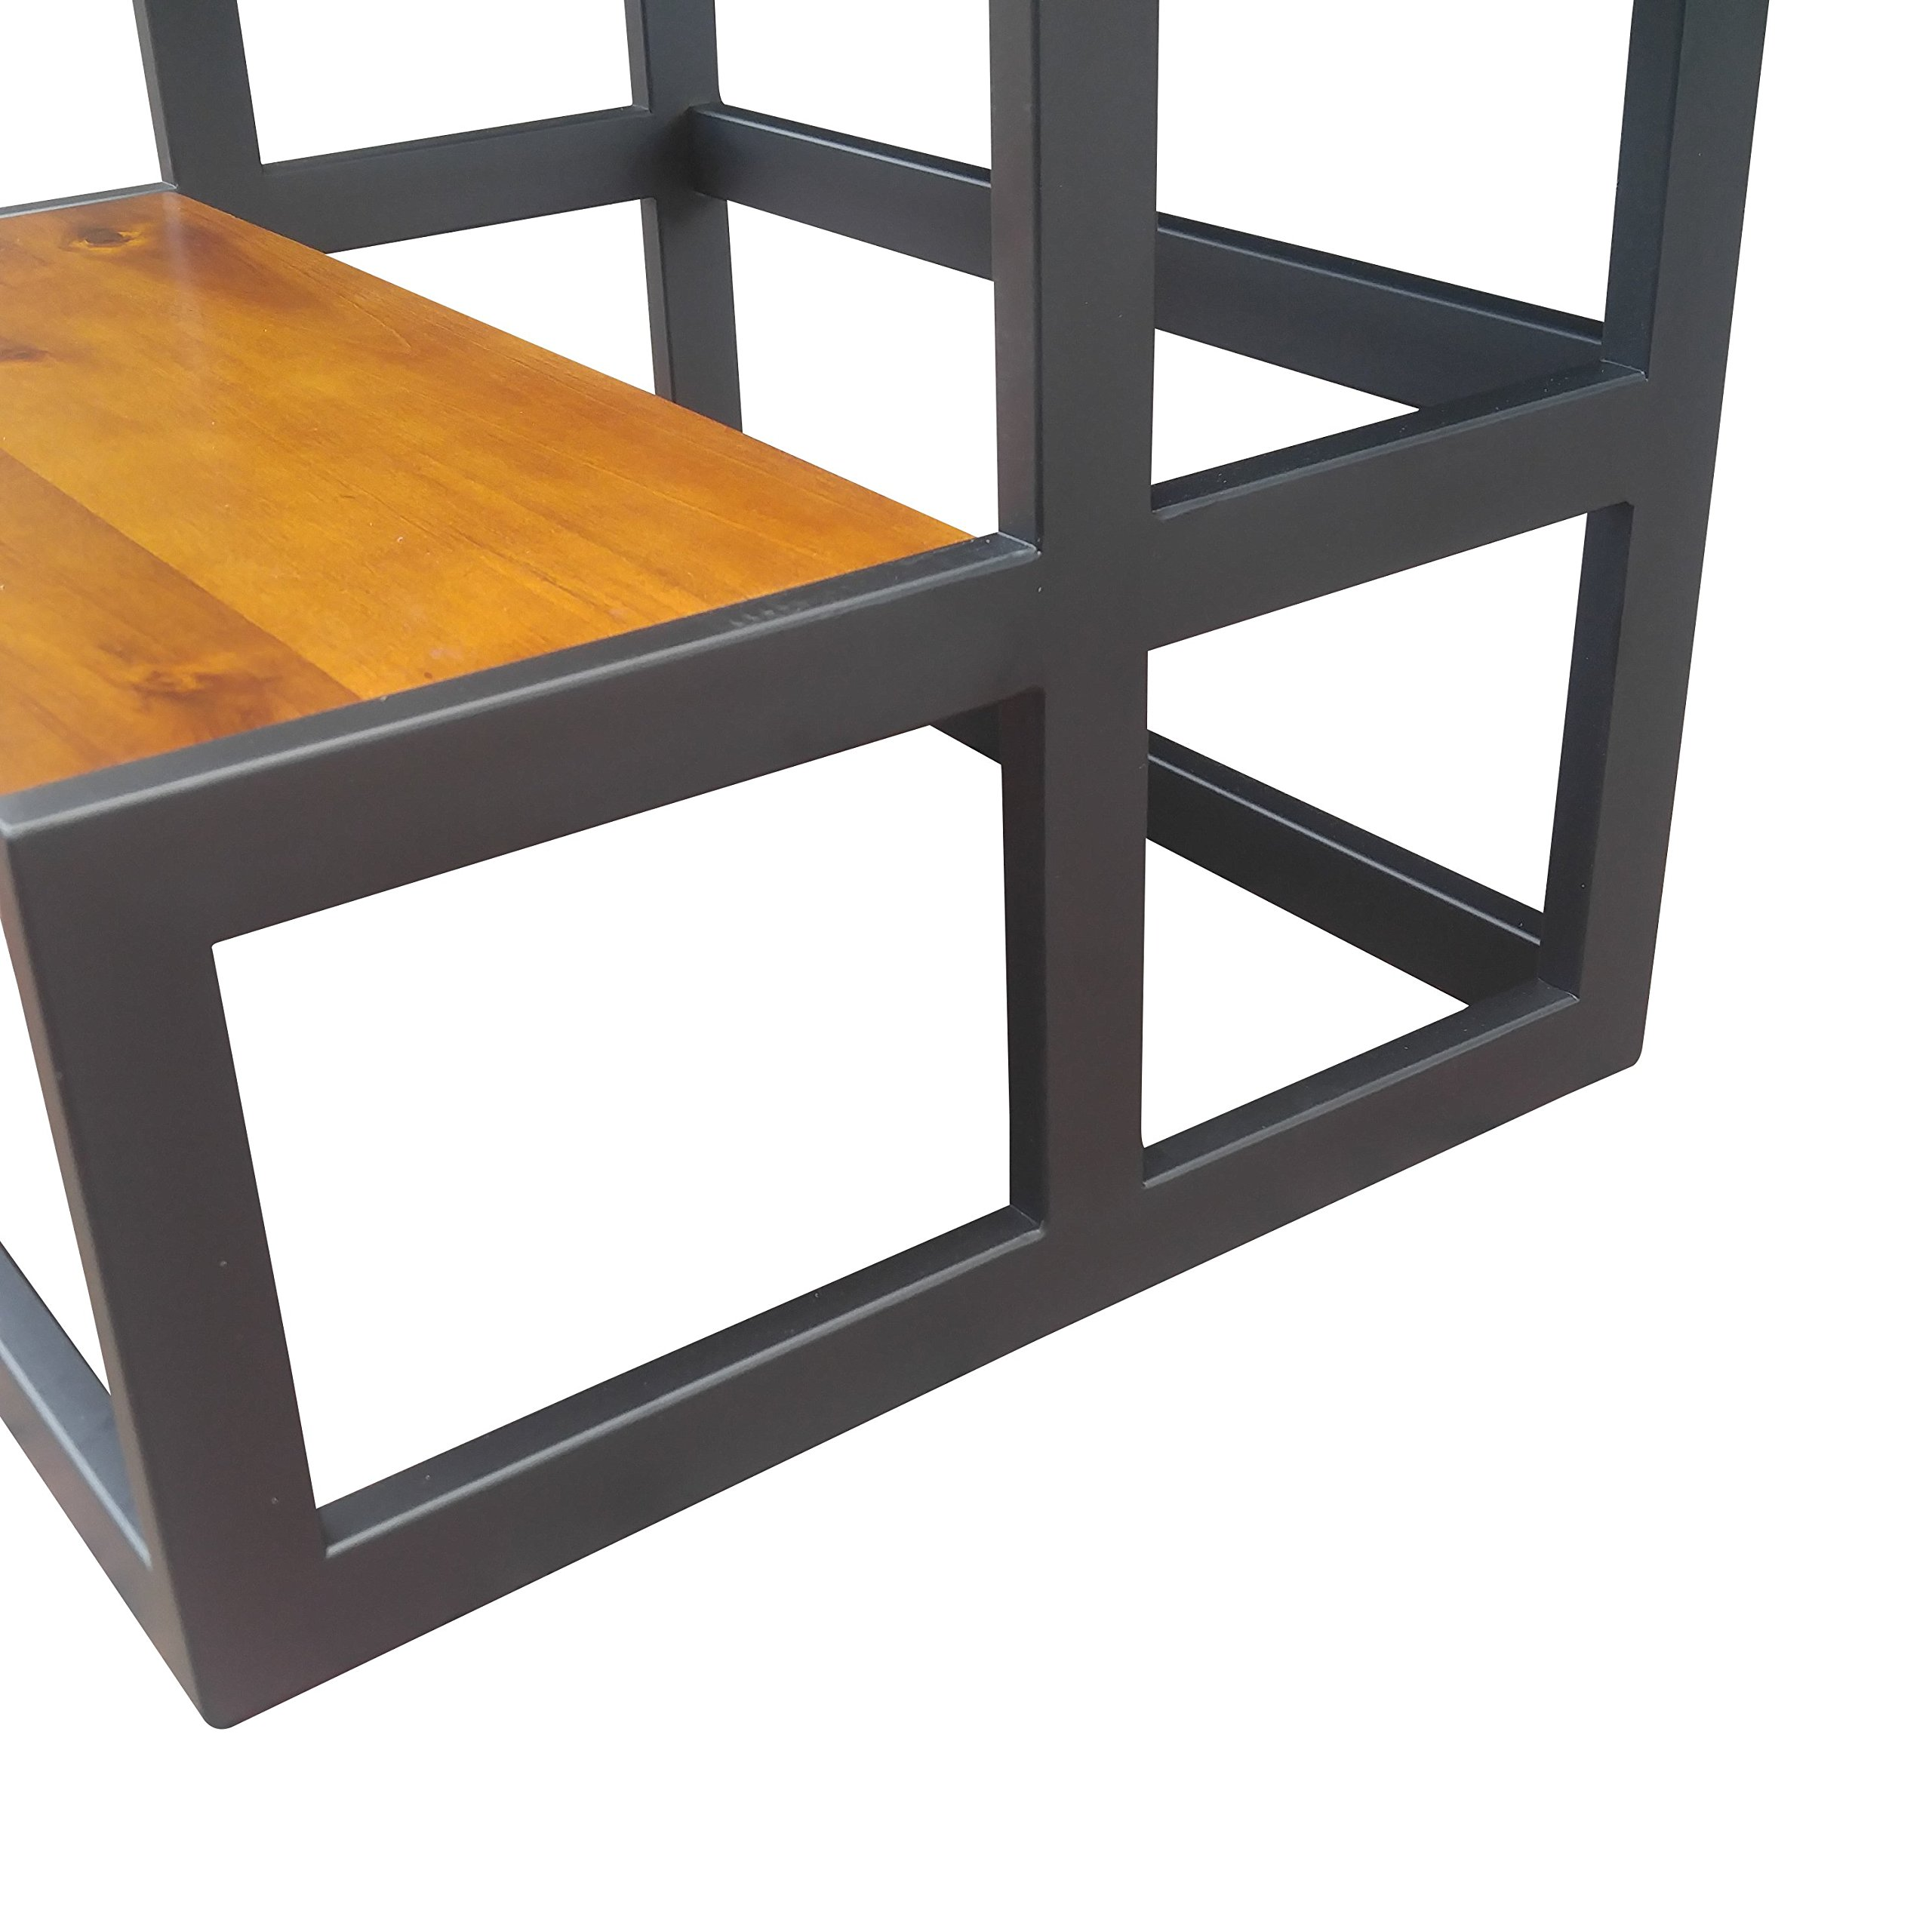 Design 59 inc Acacia Hardwood Step Stool/Bed Steps/Plant Stand, NO Assembly Required by Design 59 inc (Image #3)